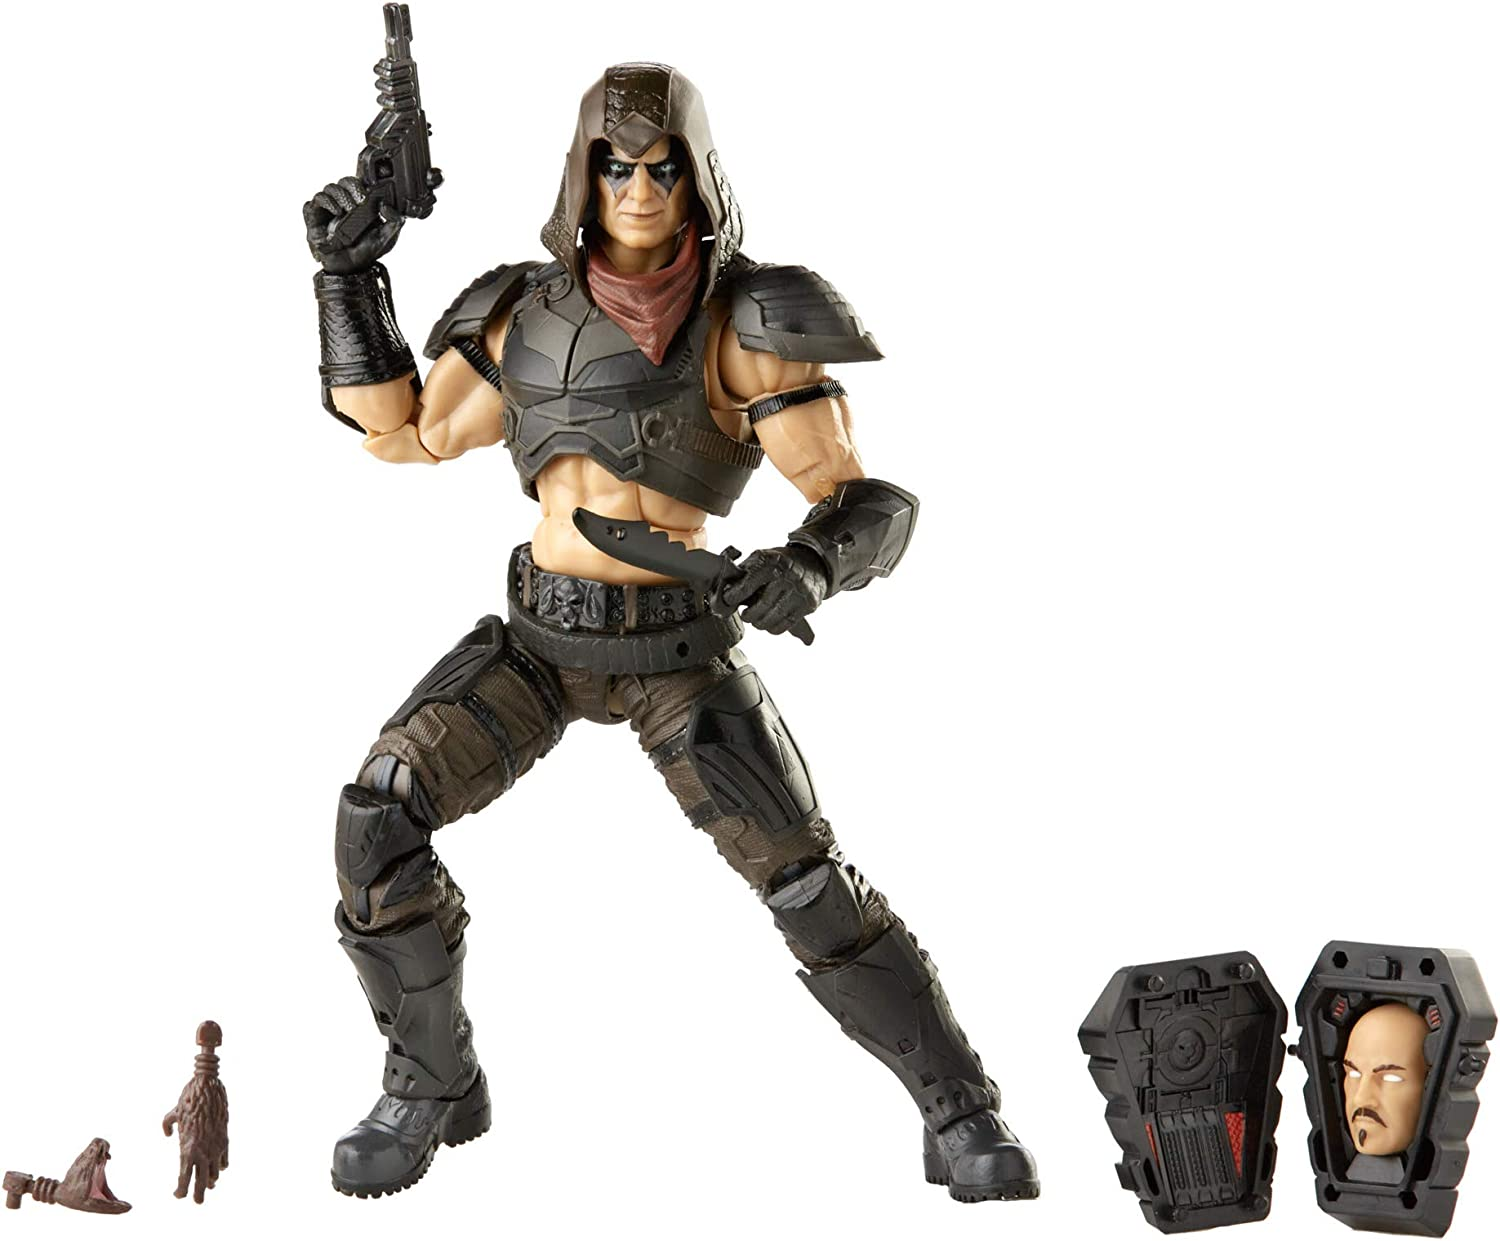 Joe Classified Series Zartan Action Figure 23 Collectible Premium Toy with Multiple Accessories 6-Inch Scale with Custom Package Art G.I